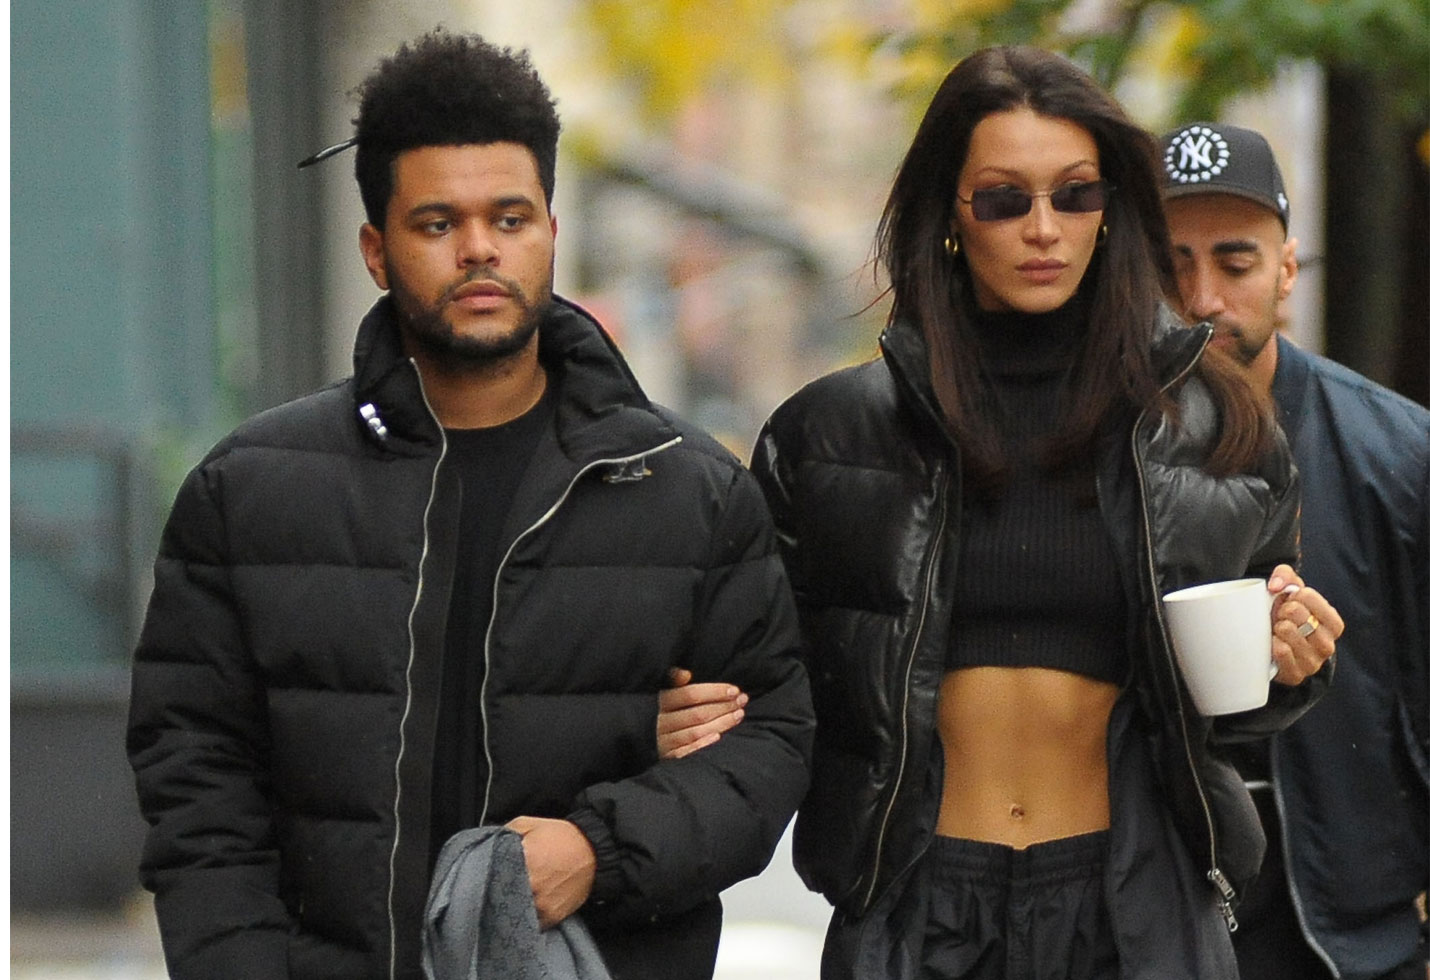 -PICTURED: The Weeknd and Bella Hadid